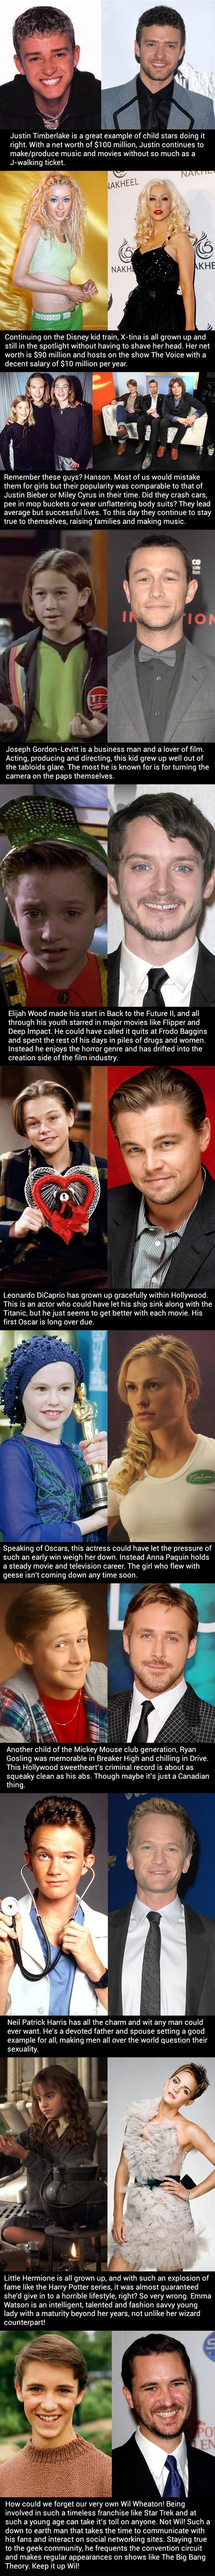 In light of the trainwrecks of Miley Cyrus and the continual up/down of Lyndsey Lohan and others lets look at child stars who didn't give in to the destructive side of fame…